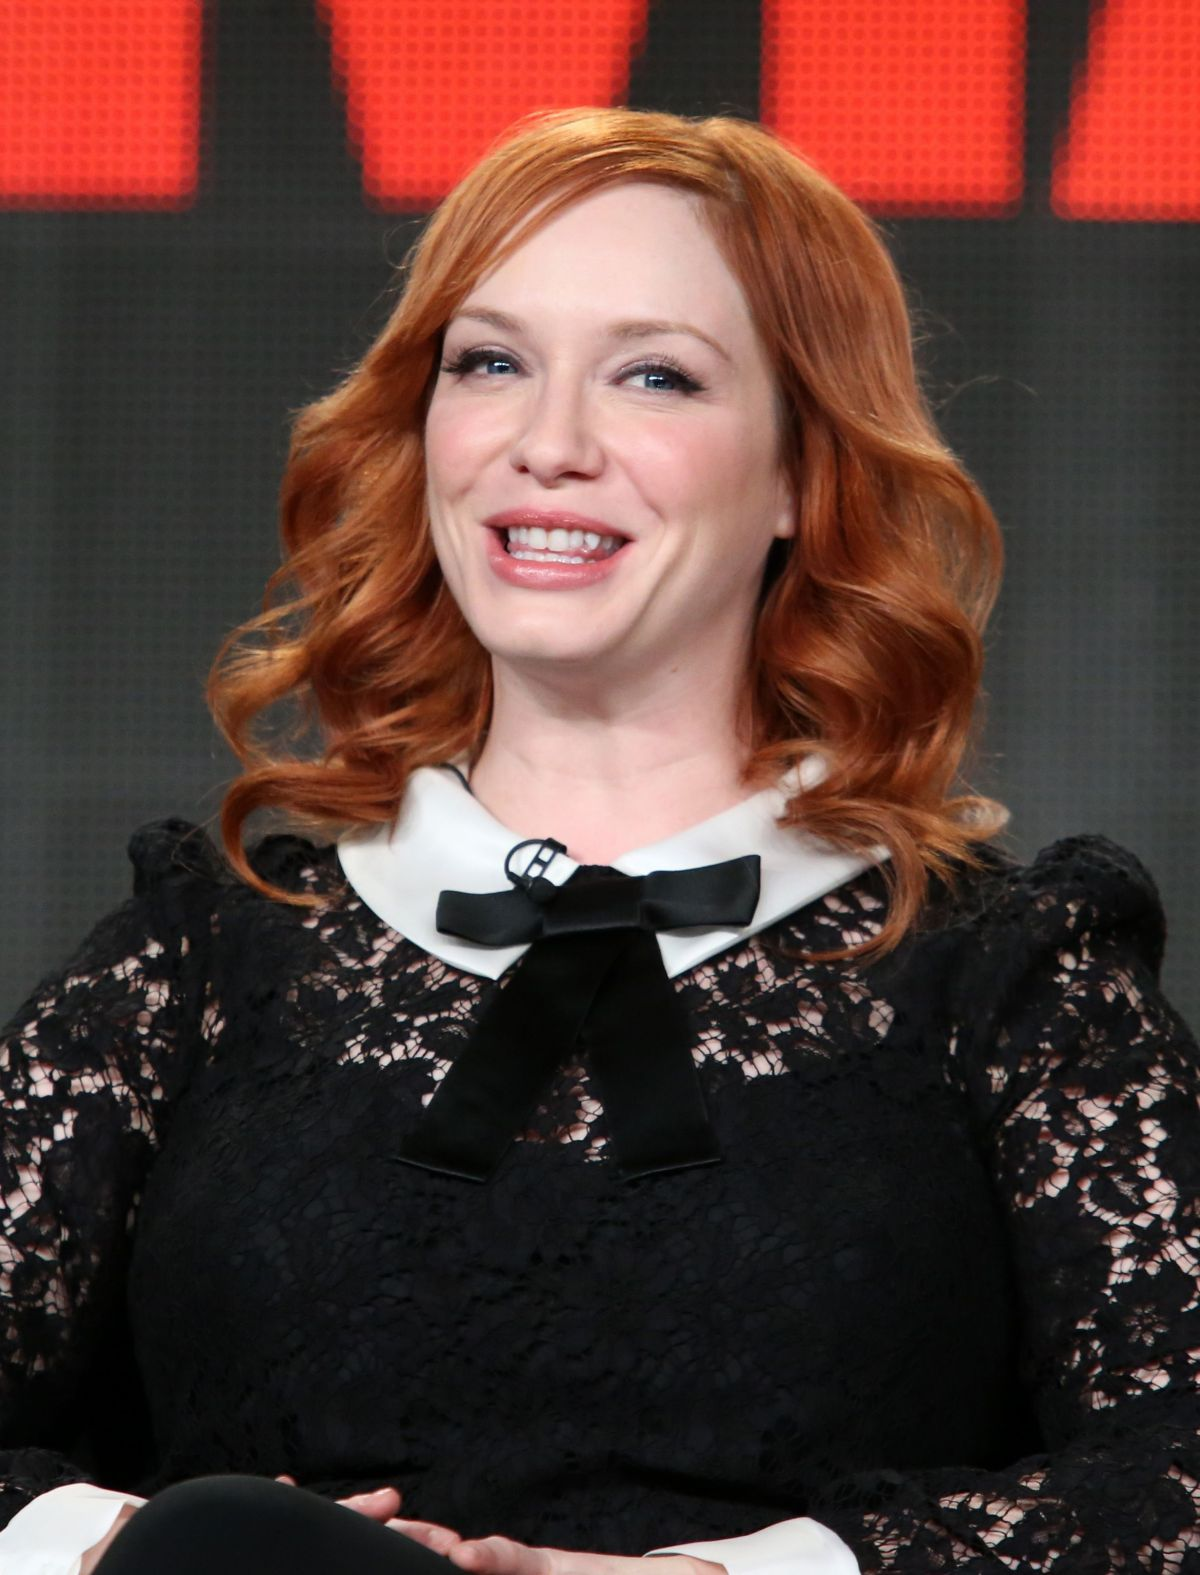 CHRISTINA HENDRICKS at Mad Men Panel TCA Press Tour in Pasadena